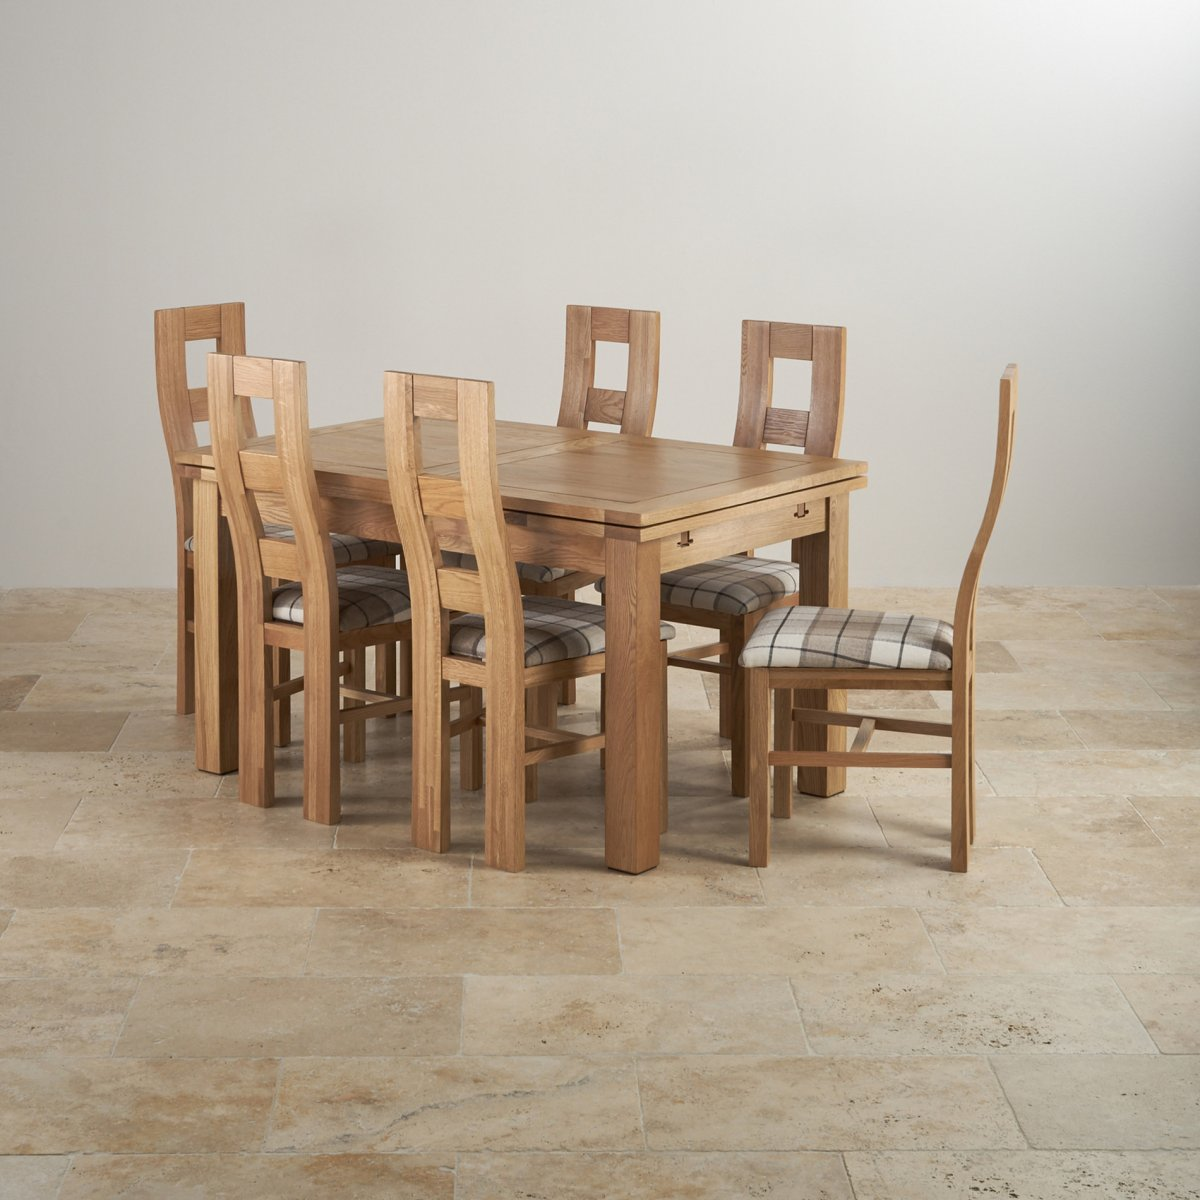 Dorset Dining Set In Real Oak: Table + 6 Patterend Chairs